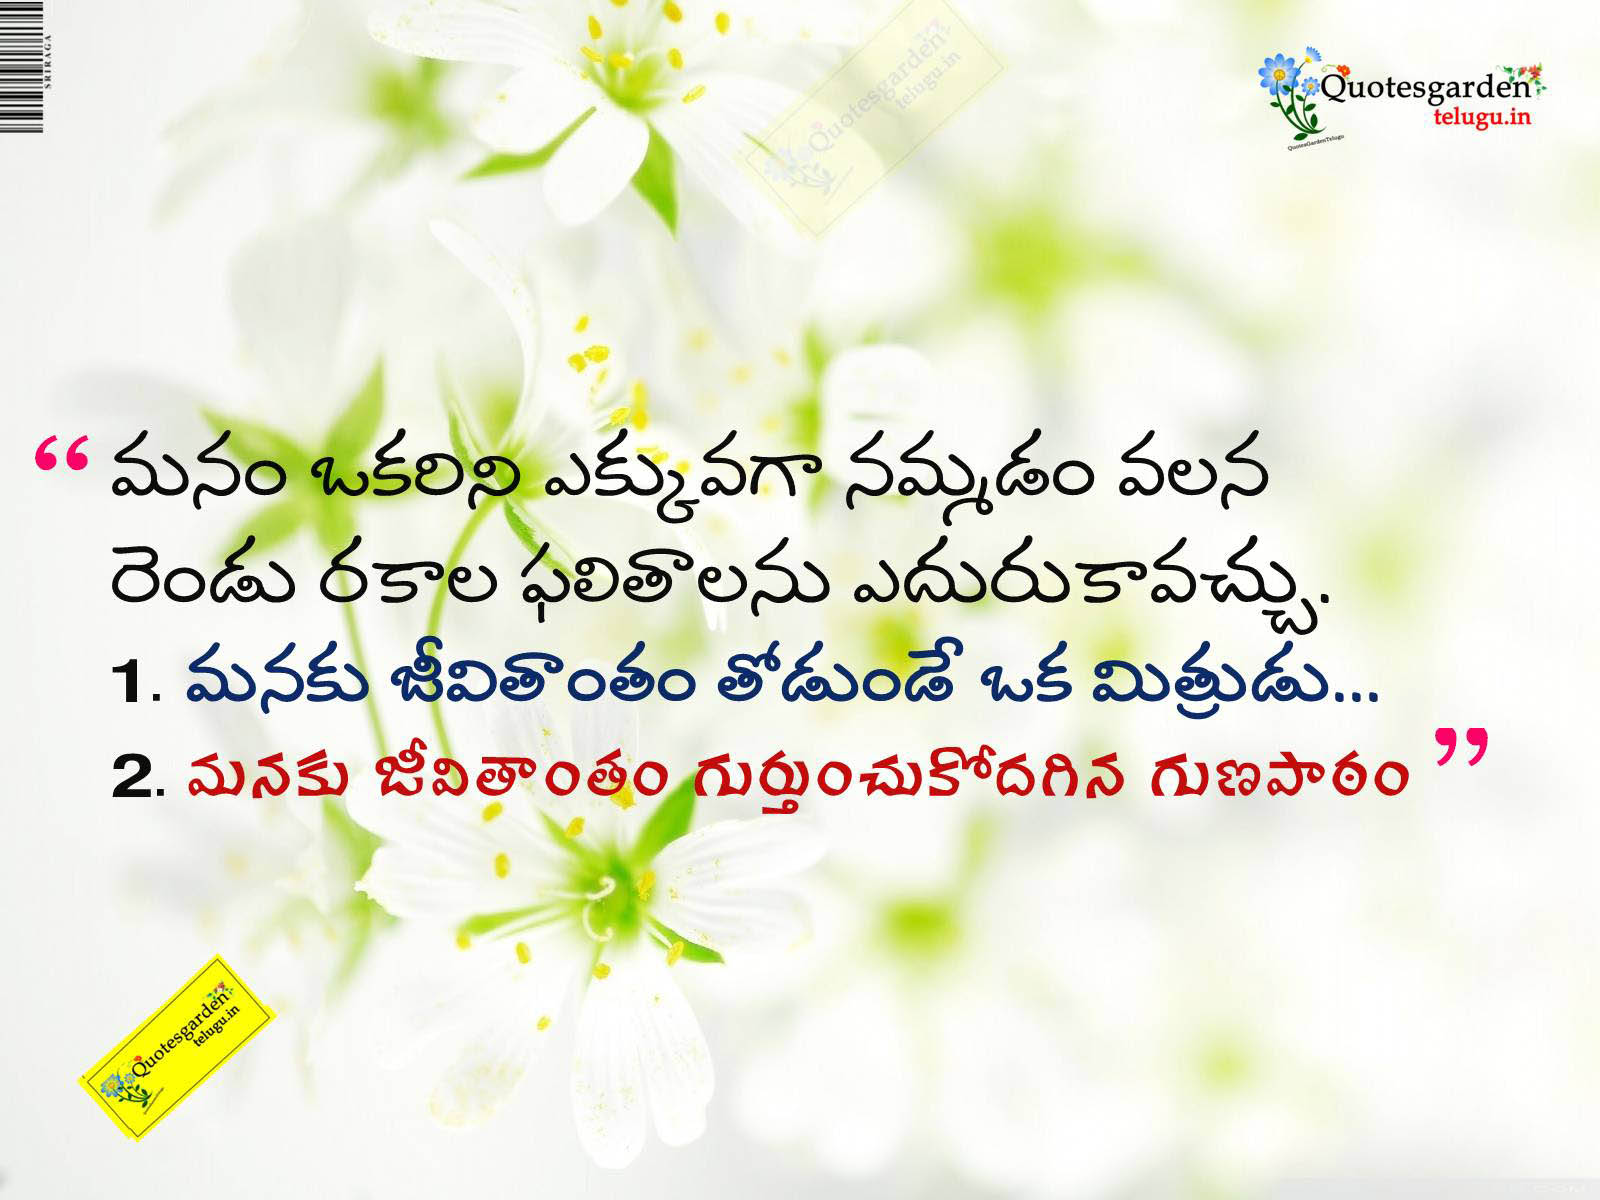 best telugu love quotes with hd images quotes garden